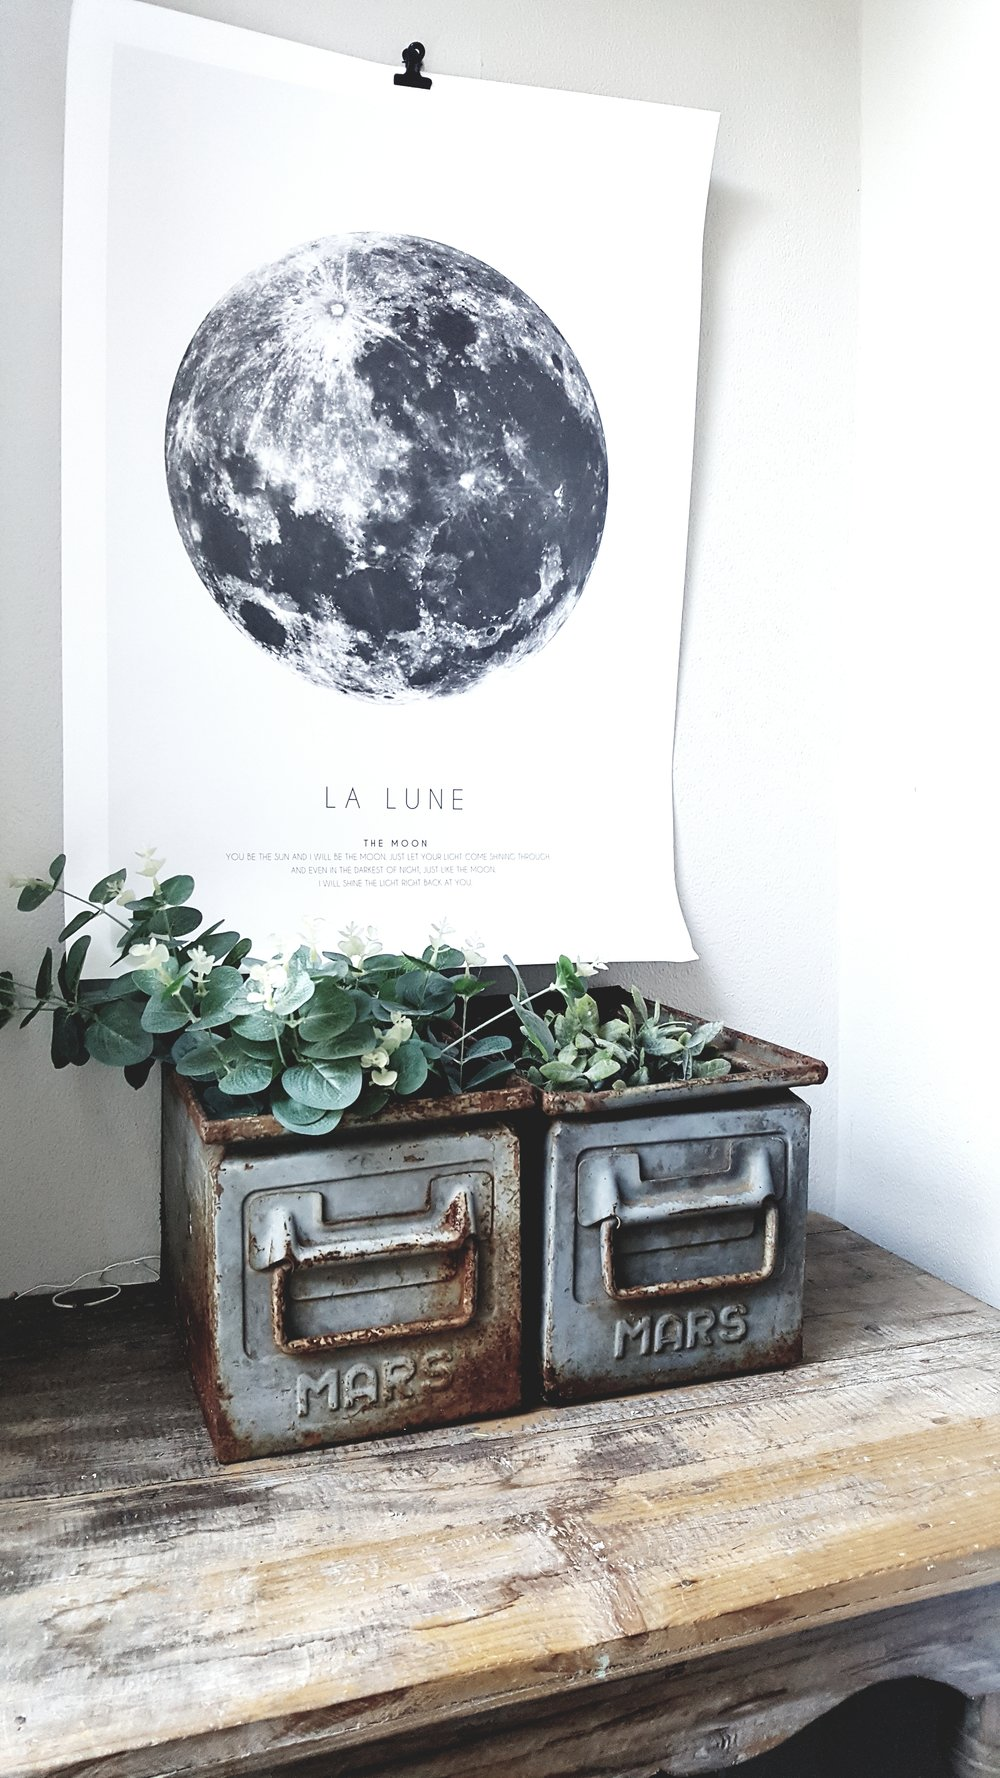 The La Lune print is a recent purchase from  Desenio